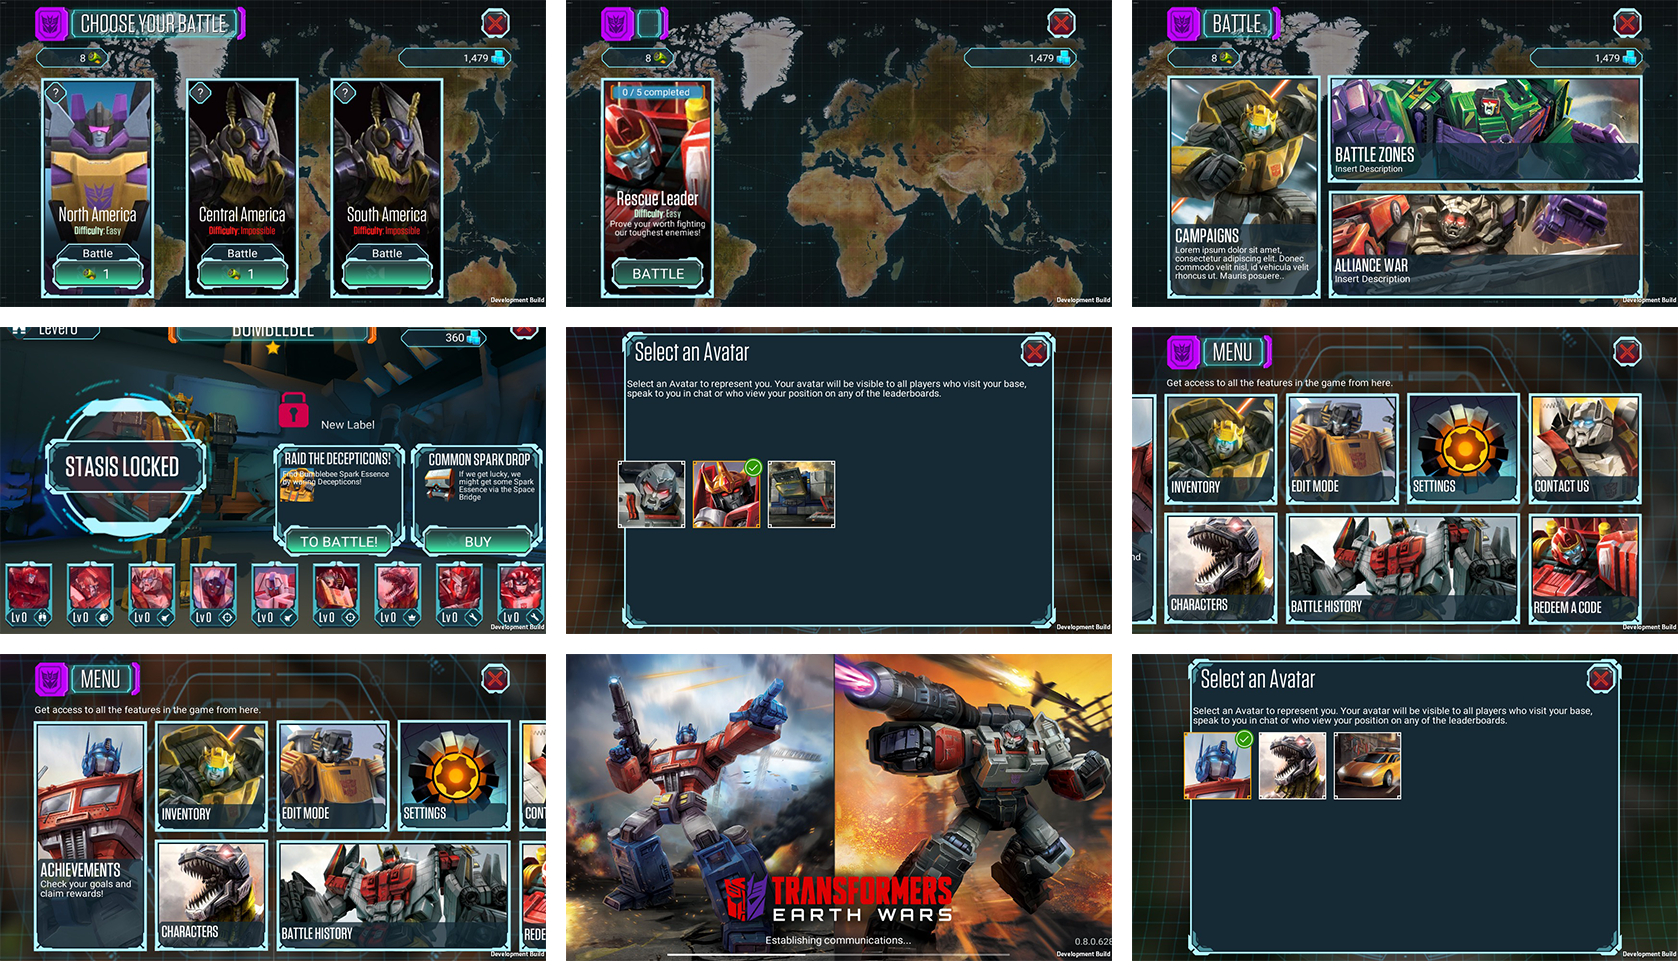 Evolving the UI Design of Transformers: Earth Wars - The